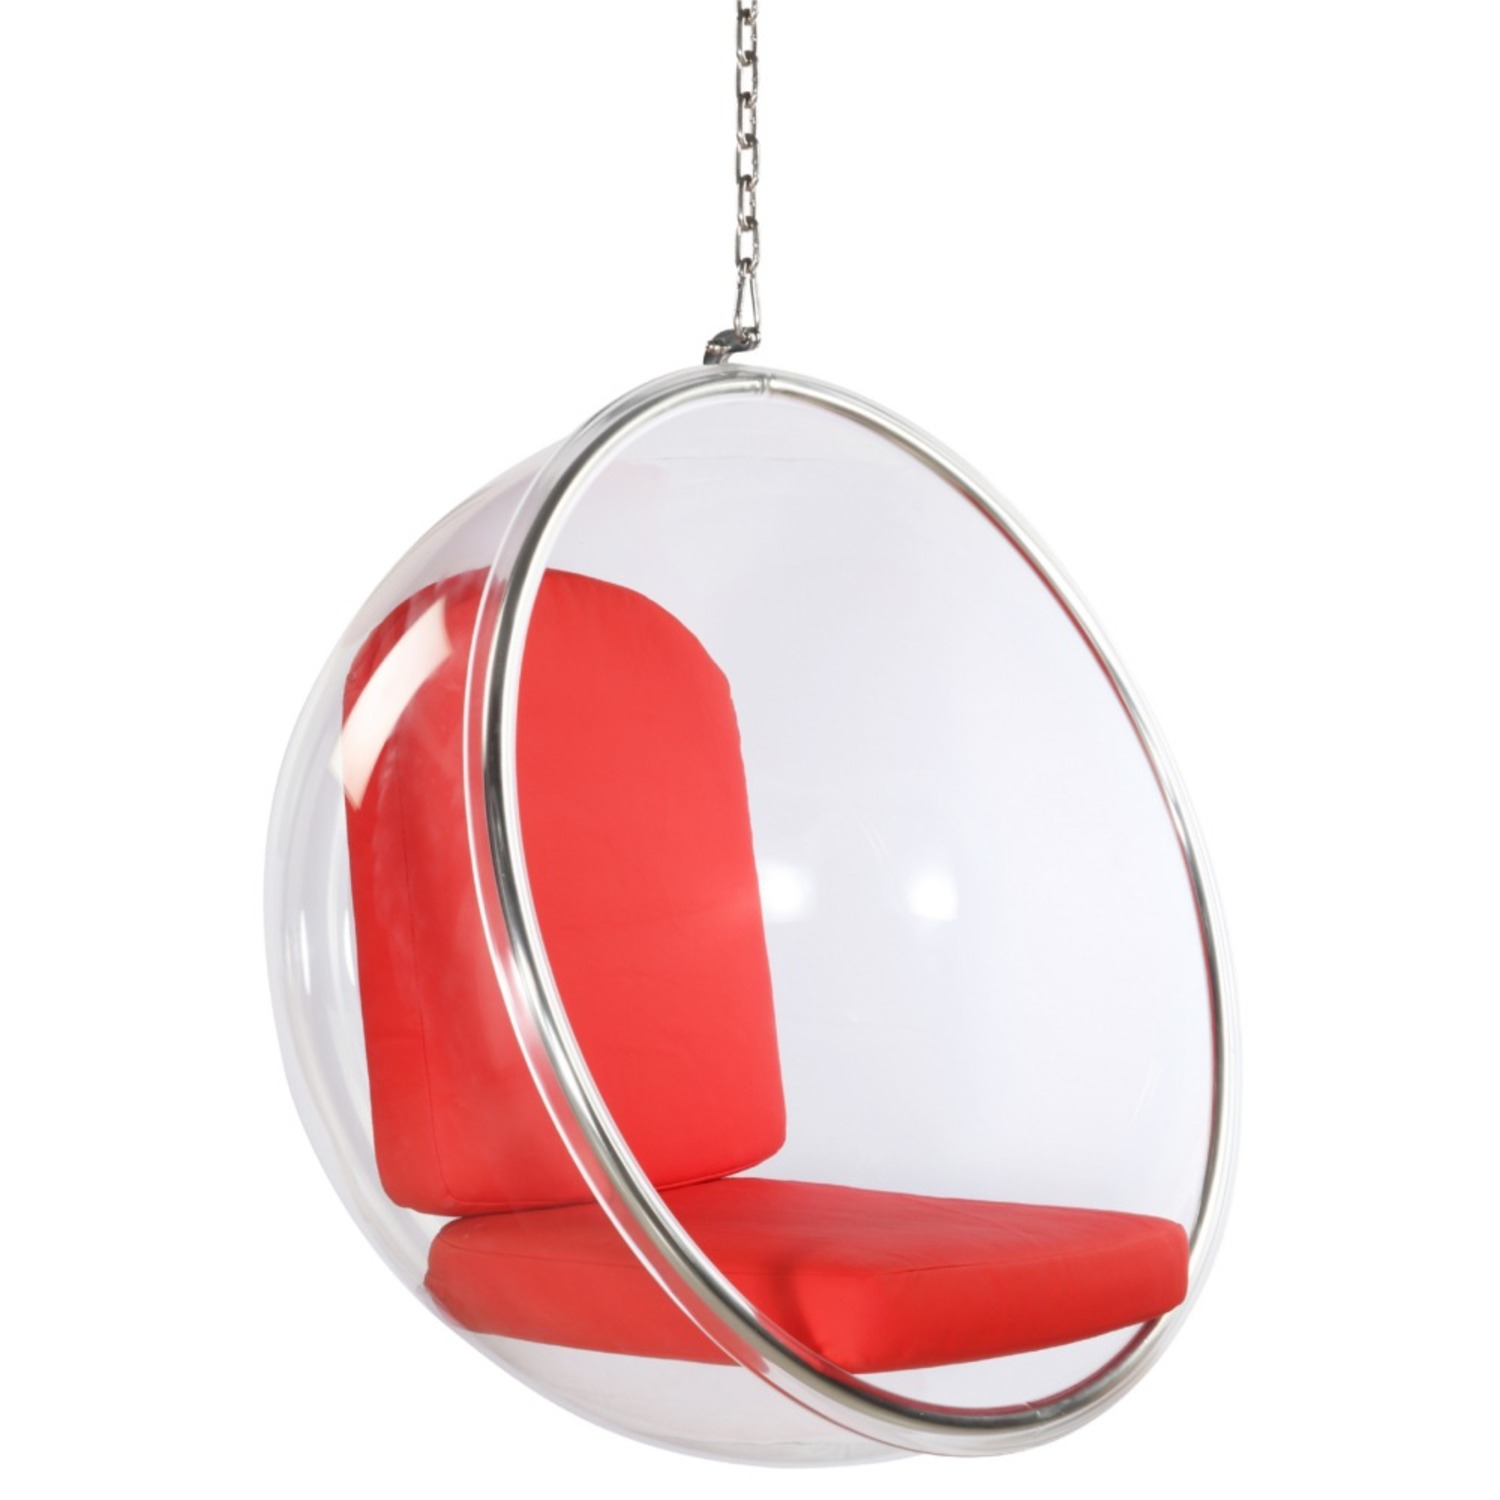 Hanging Chair In Clear Acrylic & Red PU Leather - image-0